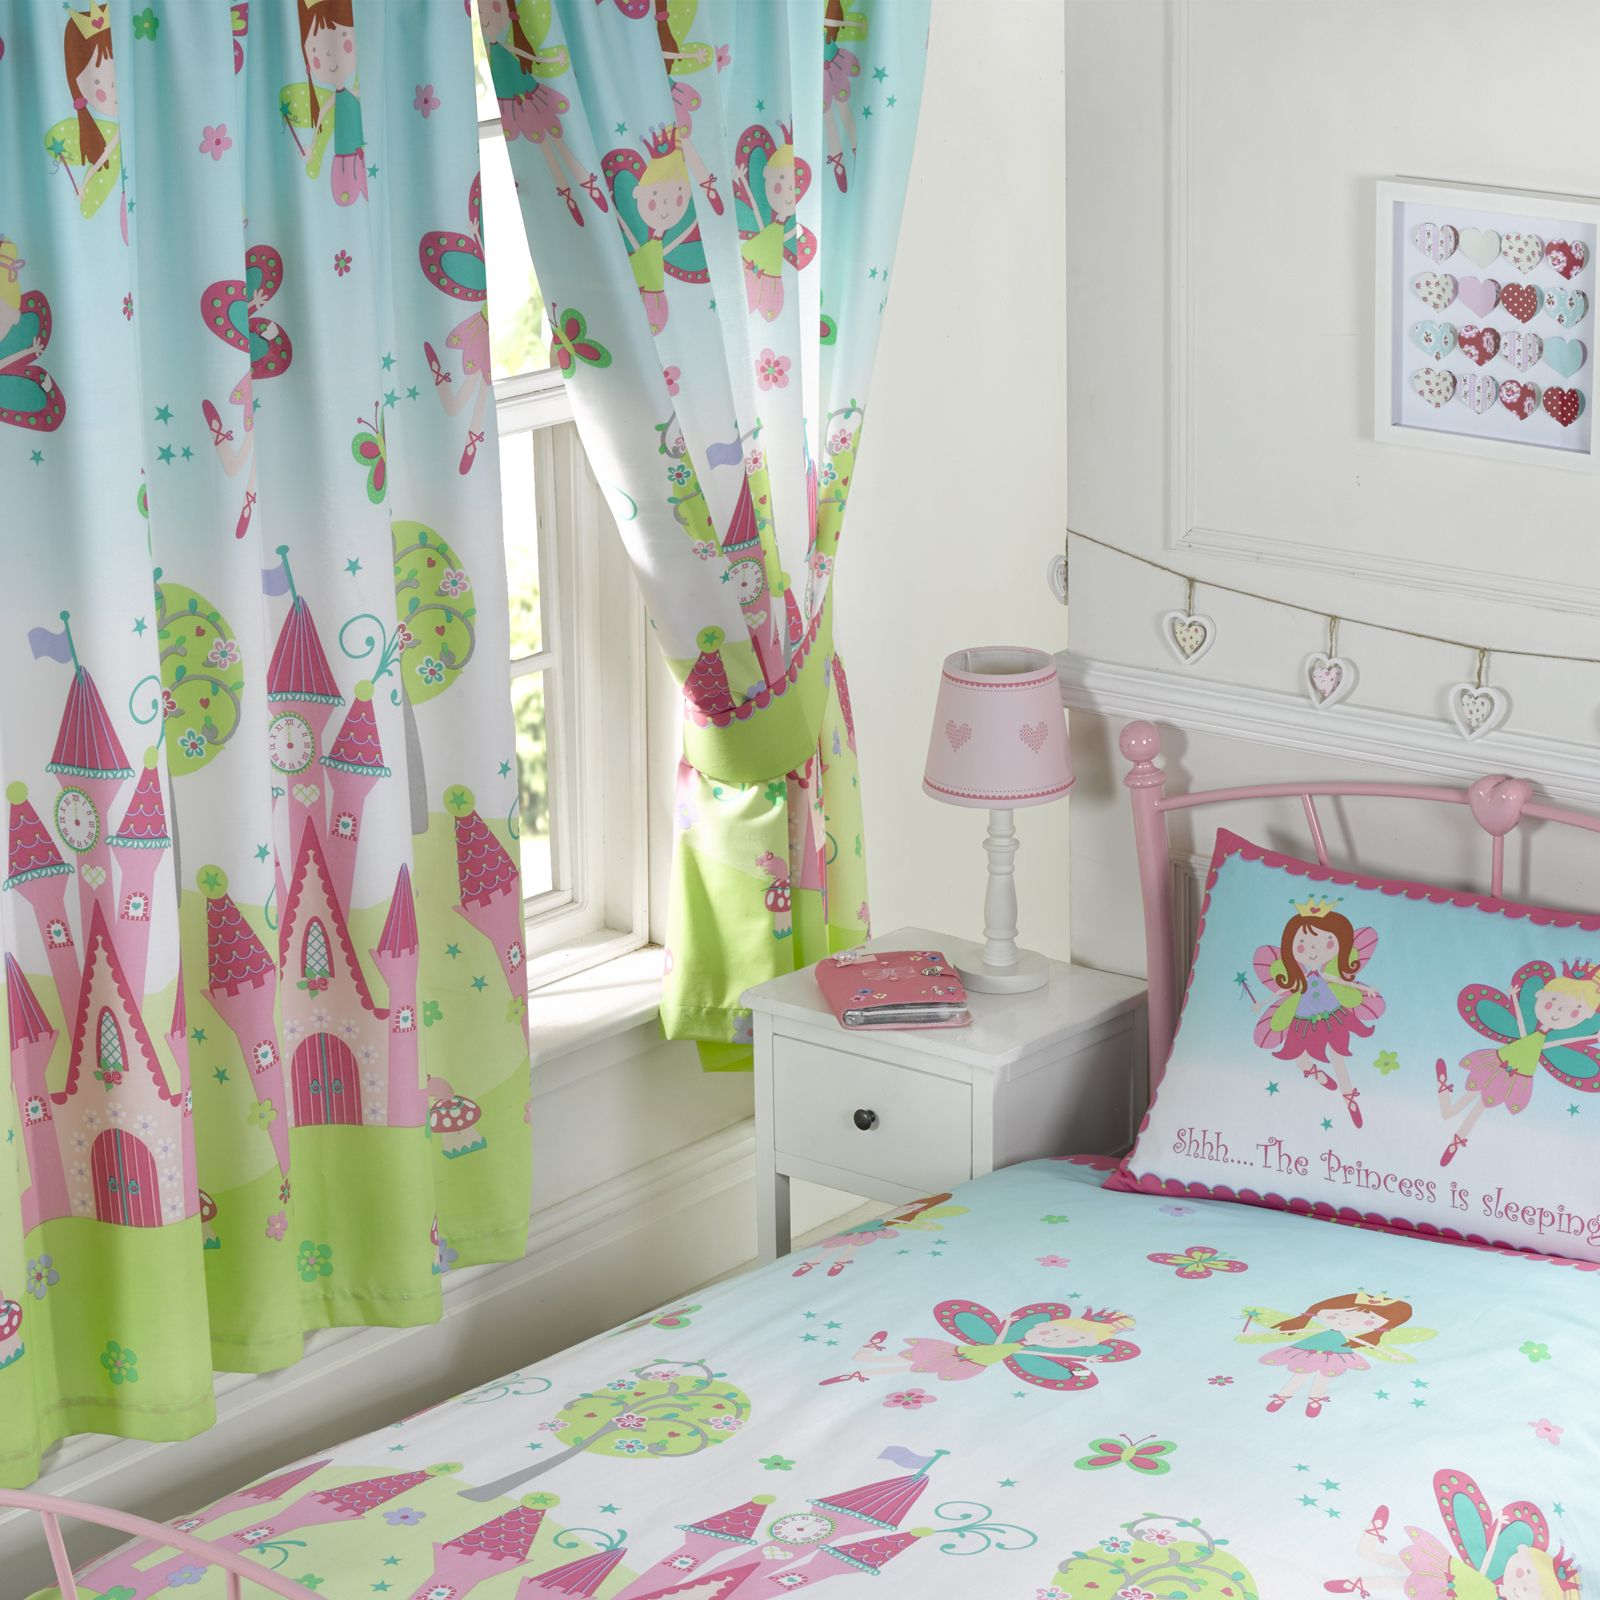 Princess Is Sleeping Bedroom Bedding And Curtains